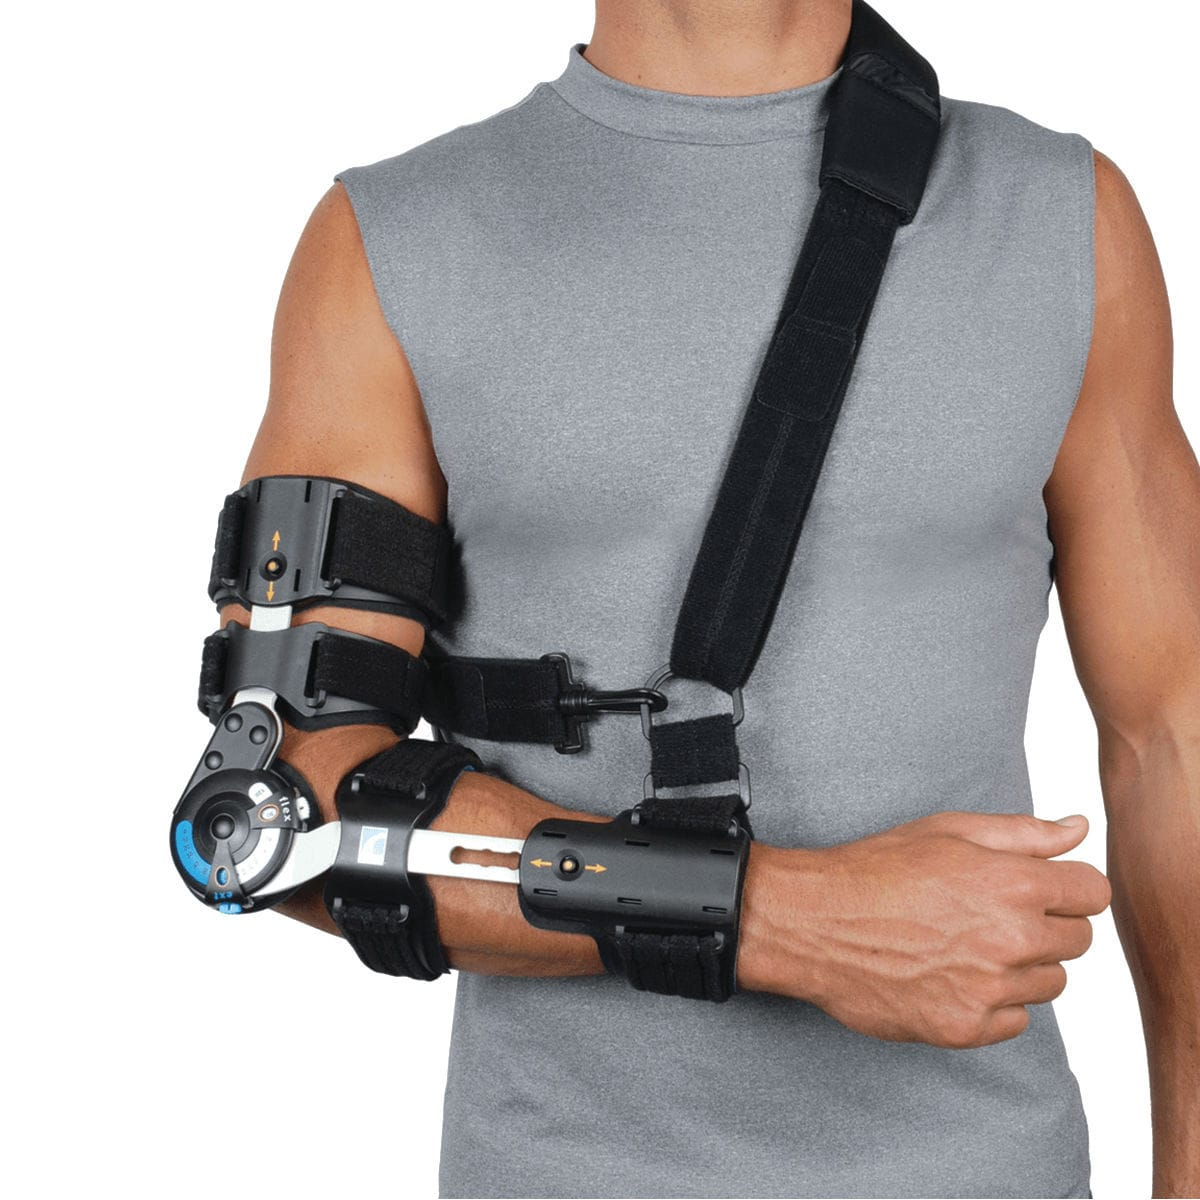 Elbow orthosis (orthopedic immobilization) / articulated